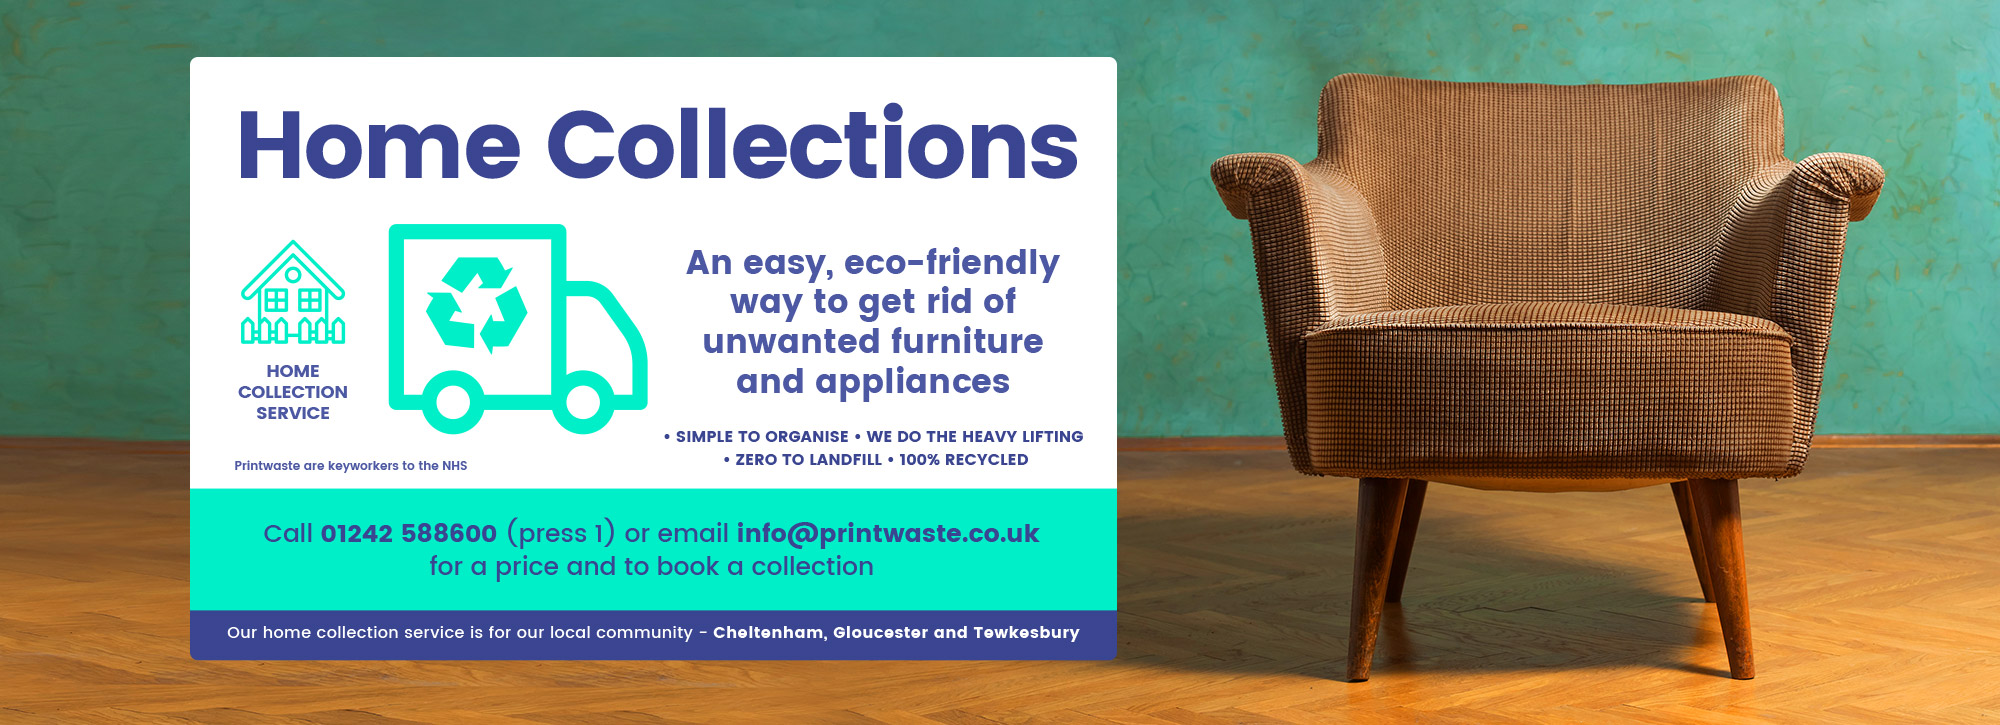 home-collection-service-furniture